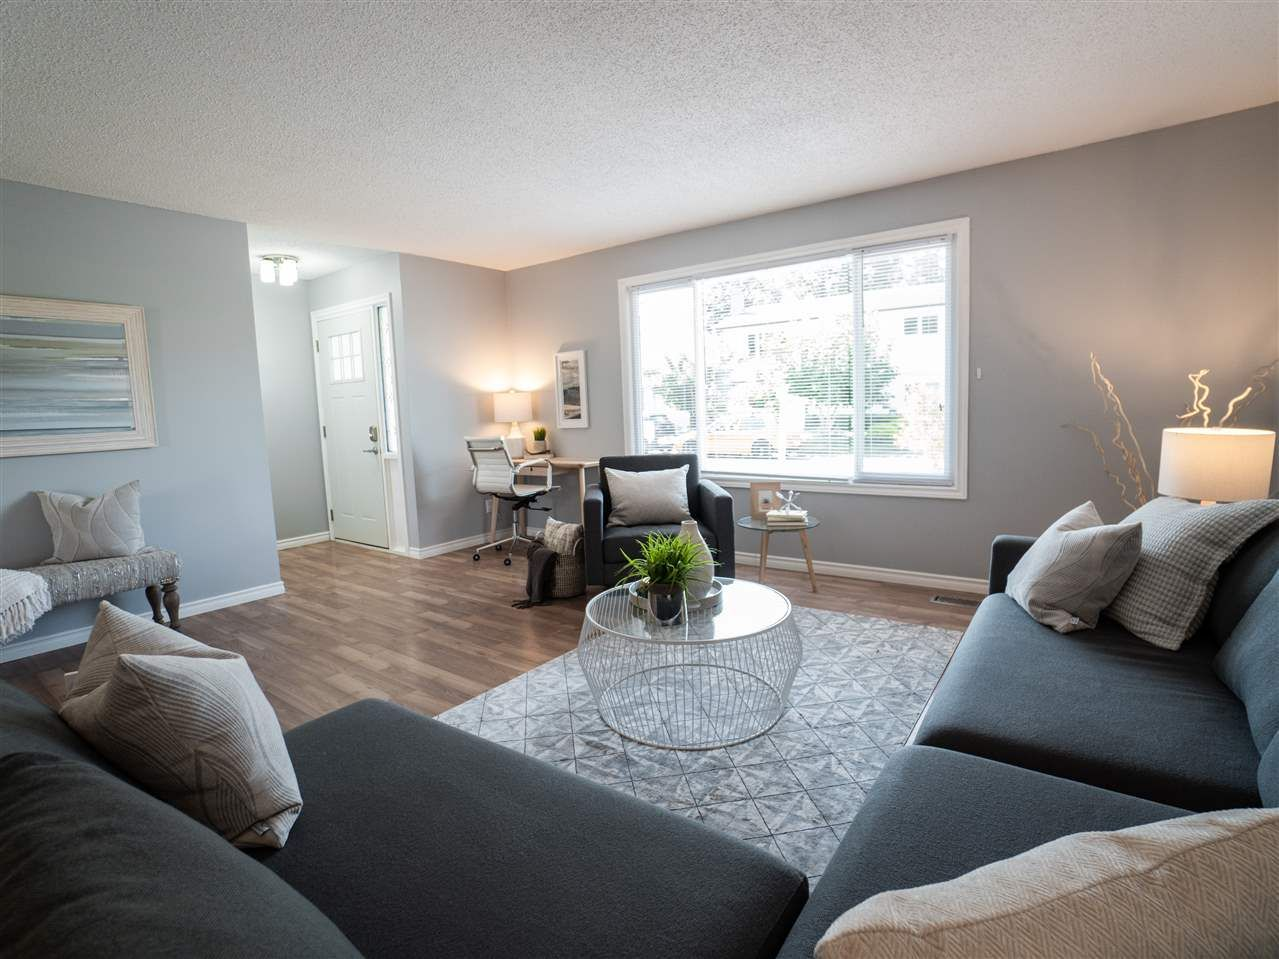 """Main Photo: 6172 DUNDEE Place in Chilliwack: Sardis West Vedder Rd House for sale in """"Dundee Place"""" (Sardis)  : MLS®# R2464587"""